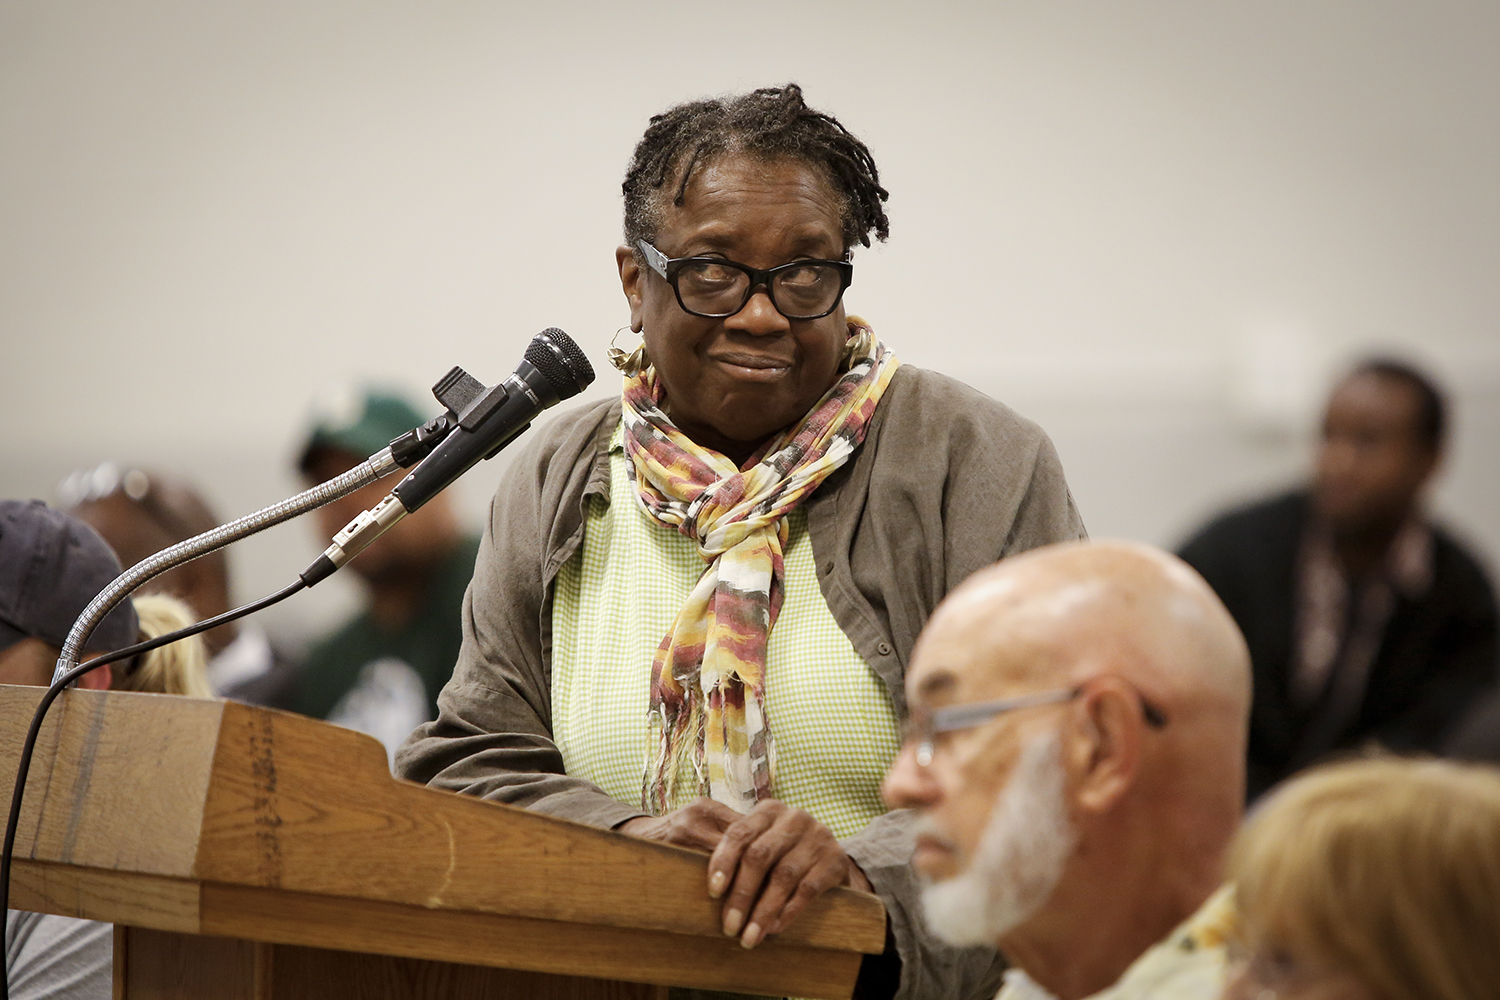 An attendee reacts to the response of her question during the Detroit Police and Fire Pension Fund Meeting on Wed., June 4, 2014 at the IBEW Local 58 in Detroit. Tim Galloway for The New York Times